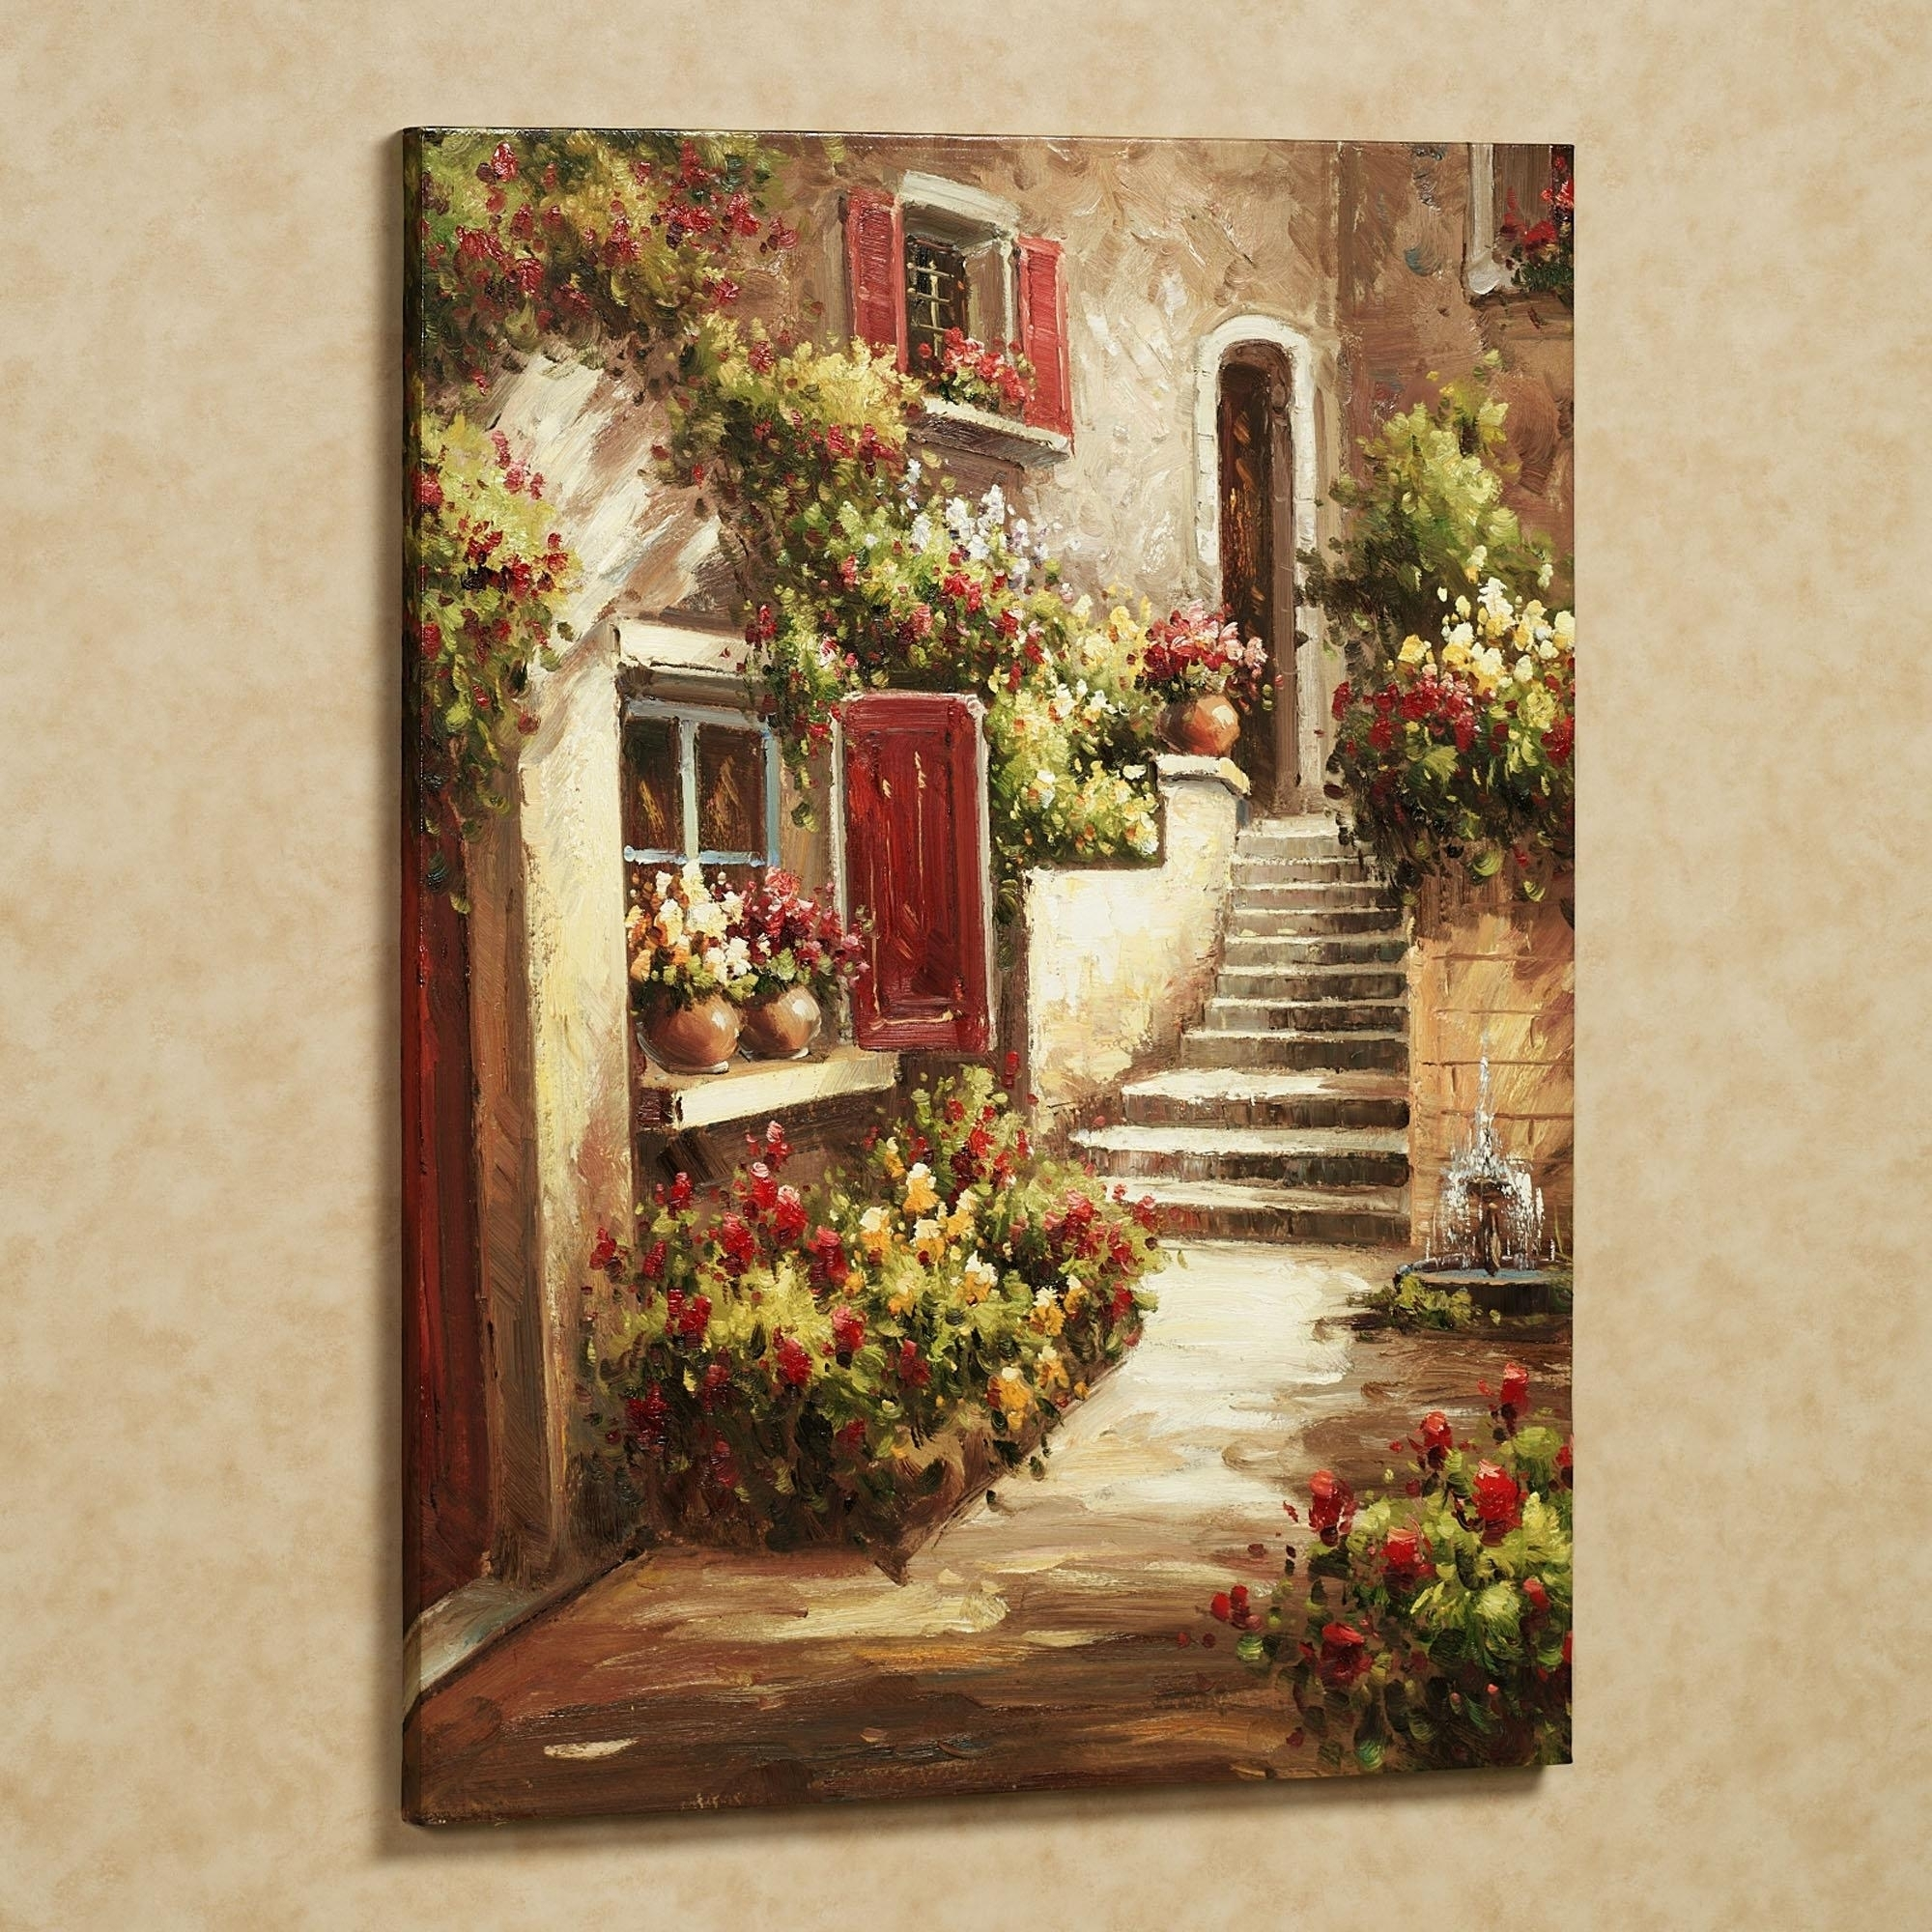 17 Traditional Wall Art Home Design Arts Decor Crecaranking Within Latest Traditional Wall Art (View 6 of 15)